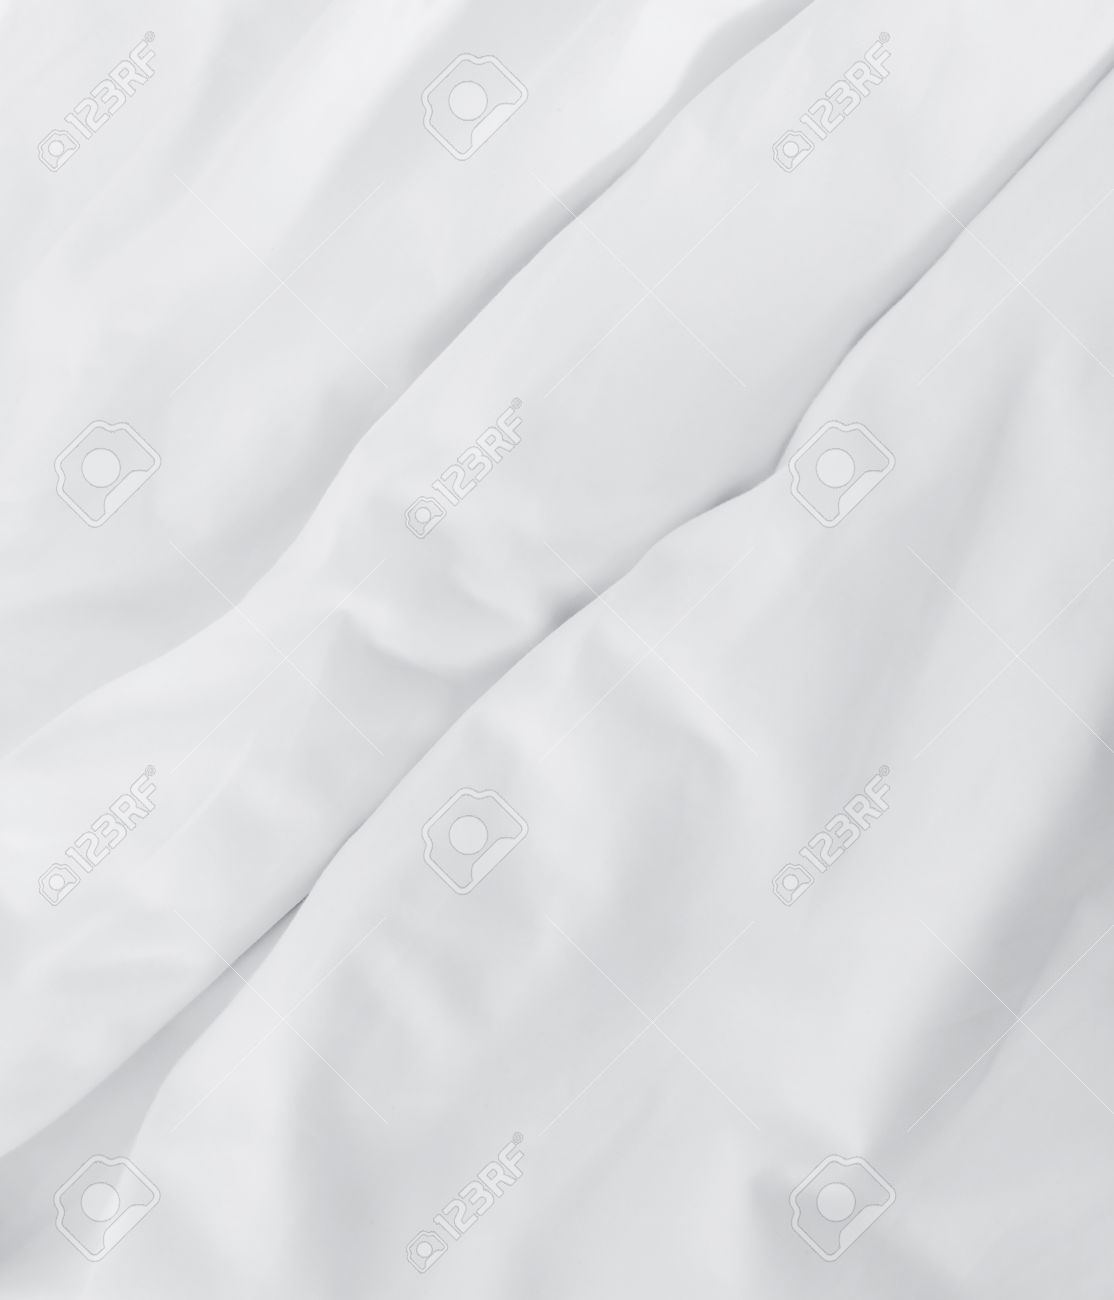 White bed sheet background - Wrinkle White Bed Sheet Background Stock Photo 37570890